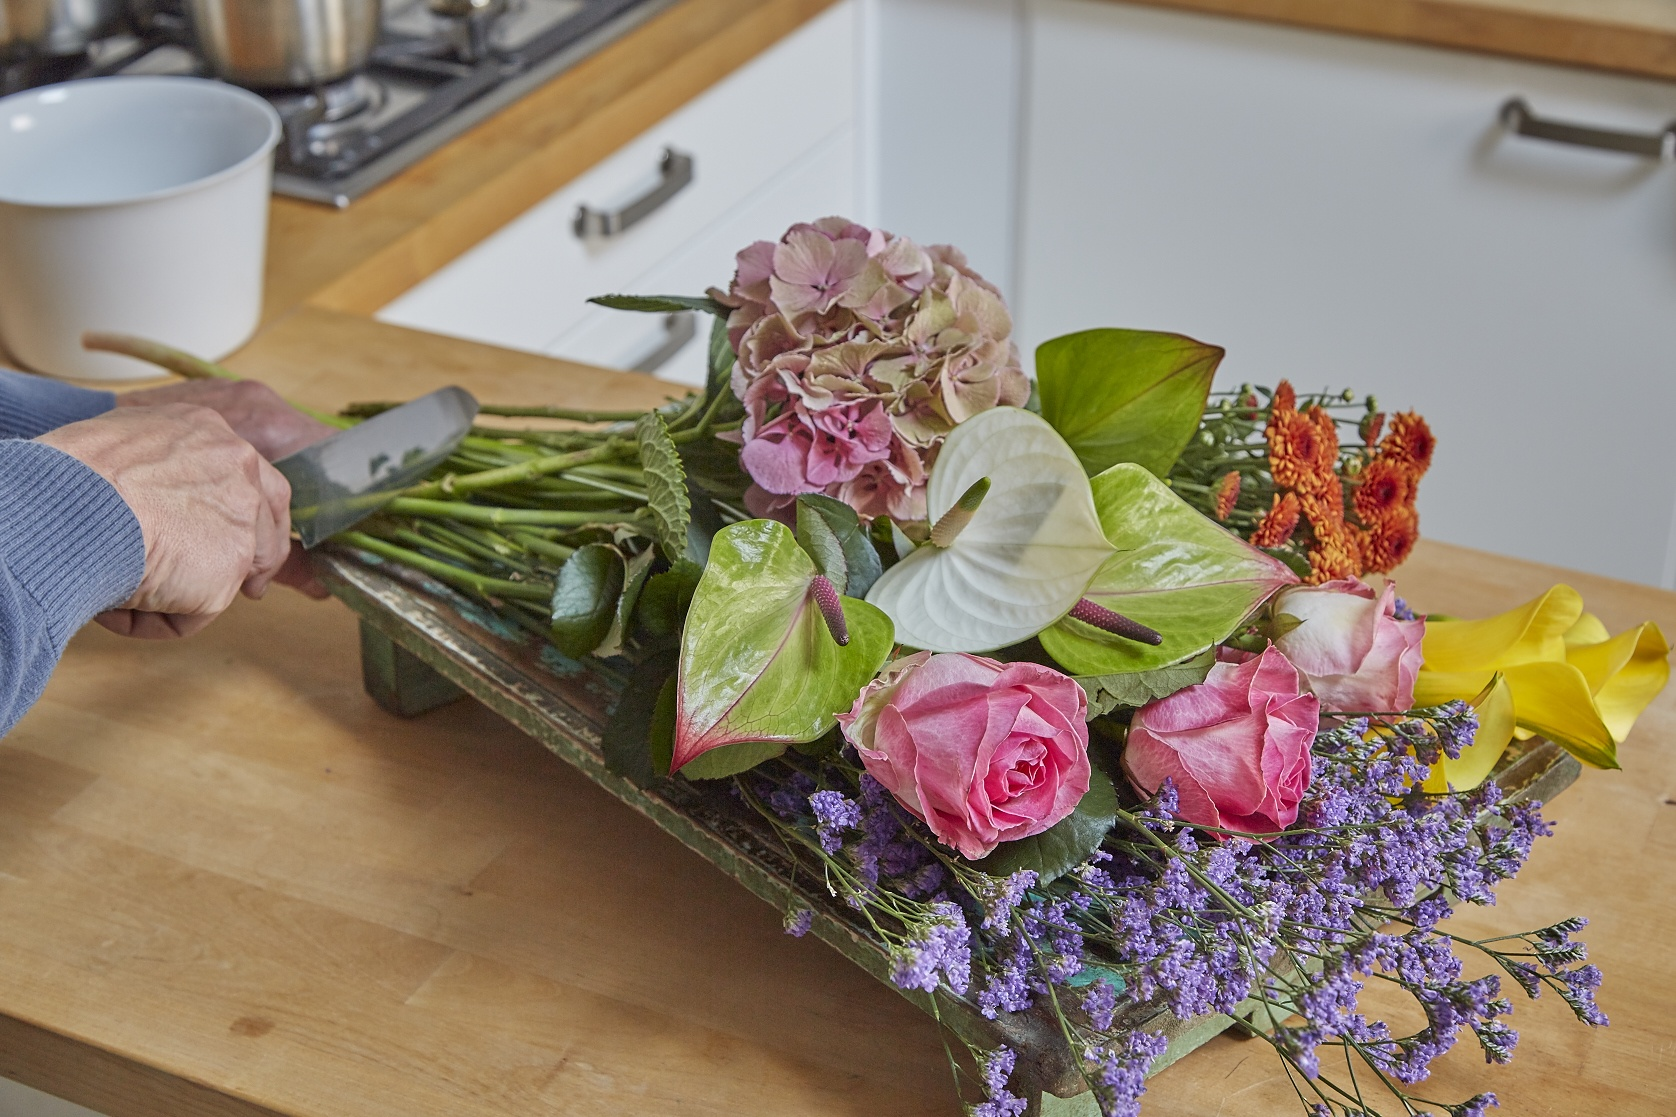 How to make a bunch of cut flowers last even longer